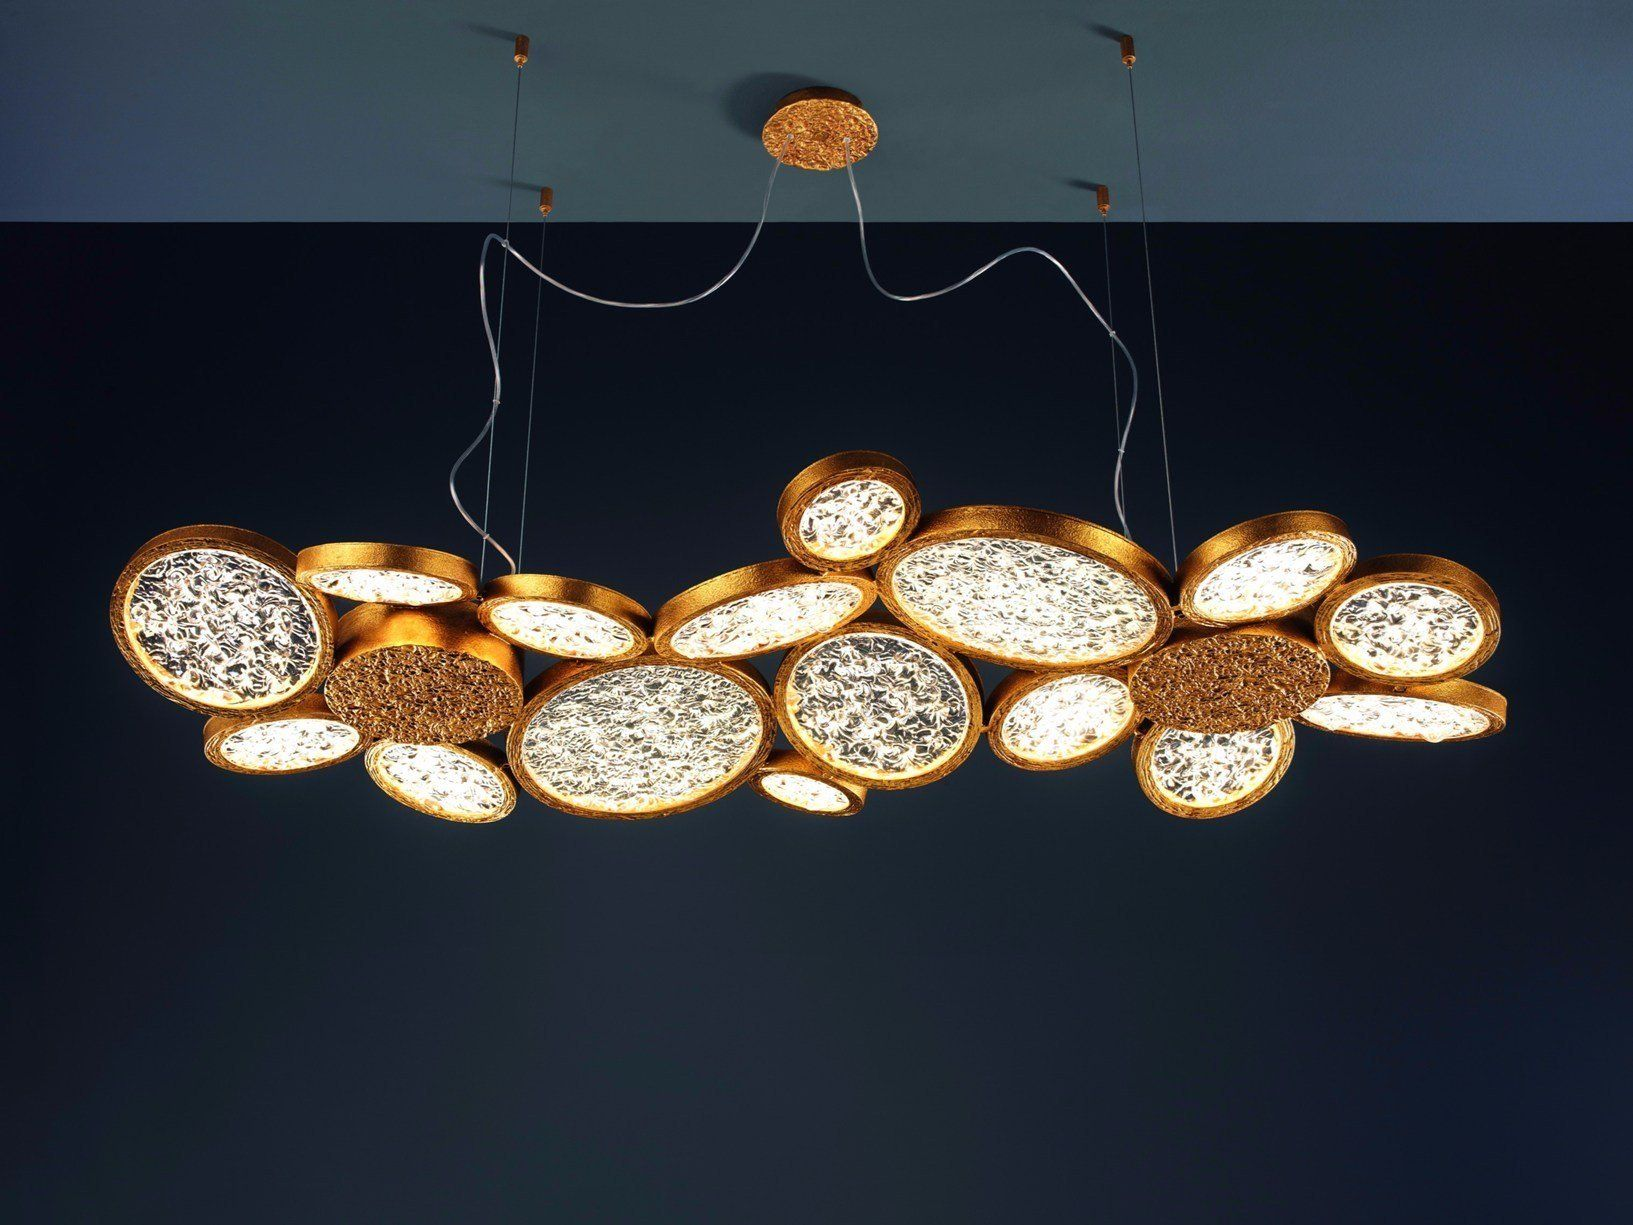 Organic Lighting Chandeliers Inspired by Nature